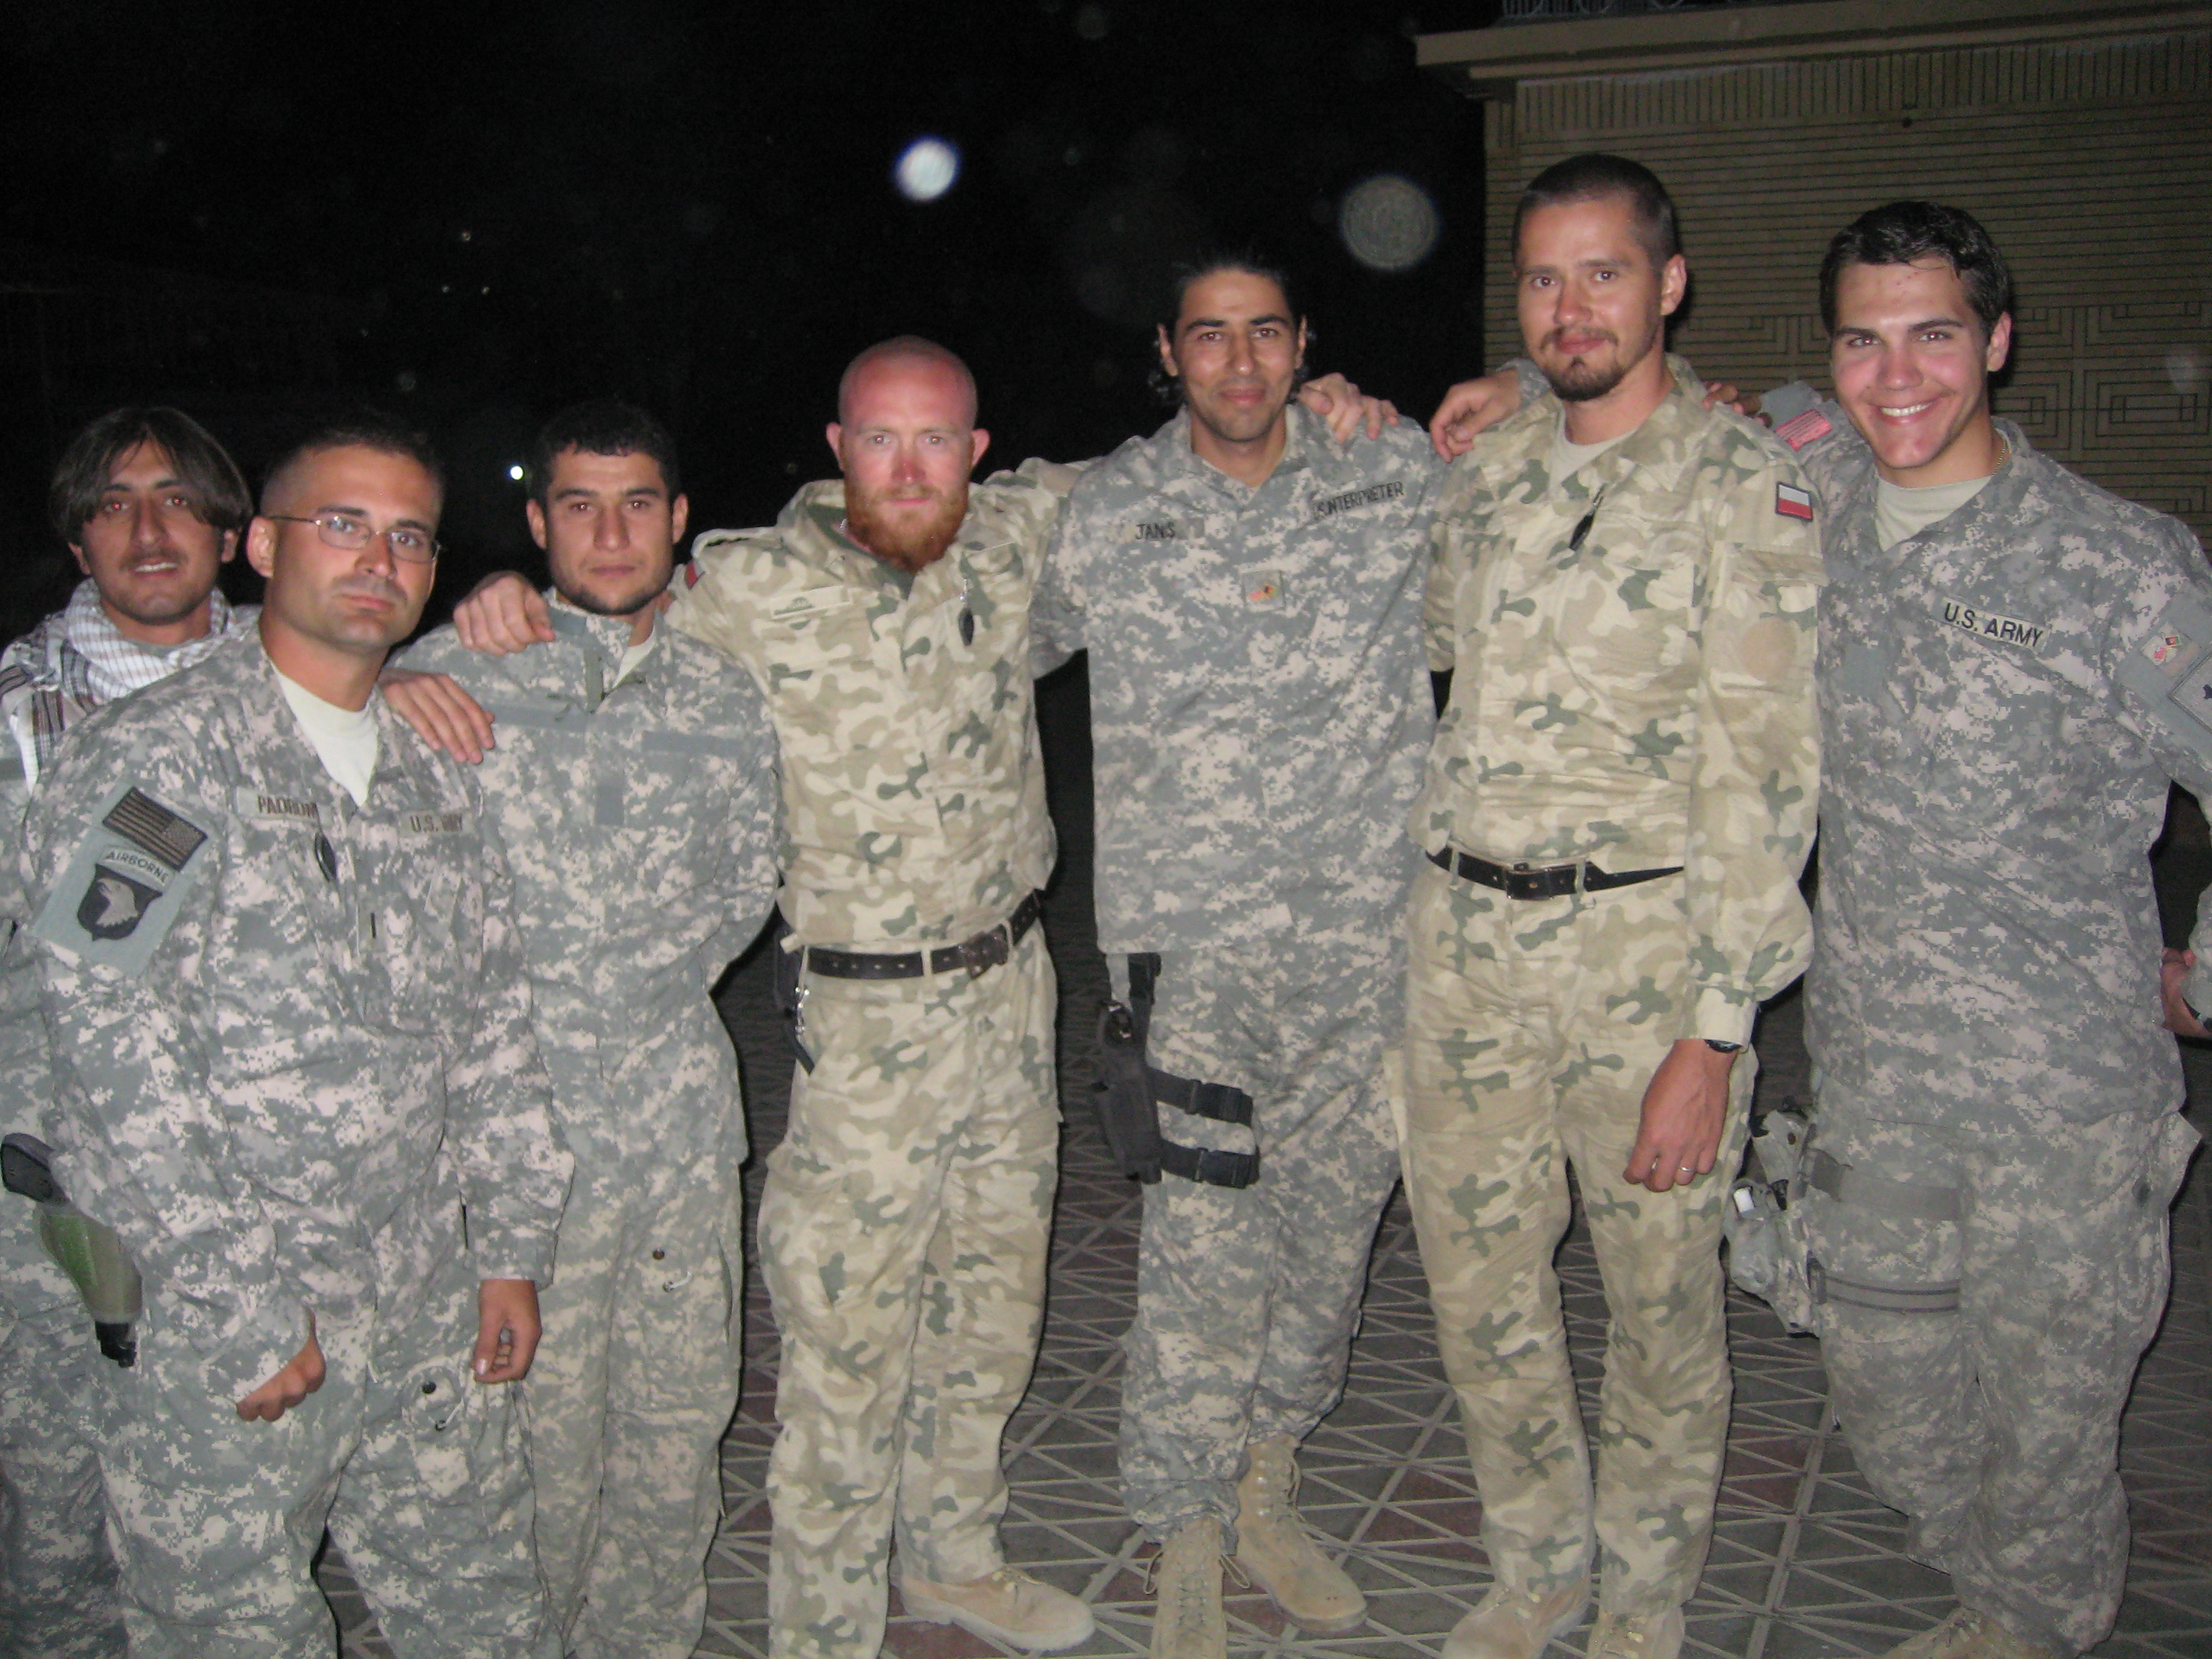 Janis Shinwari (third from right), an Afghan special immigrant visa recipient and co-founder of No One Left Behind, served as a translator for the U.S. military.